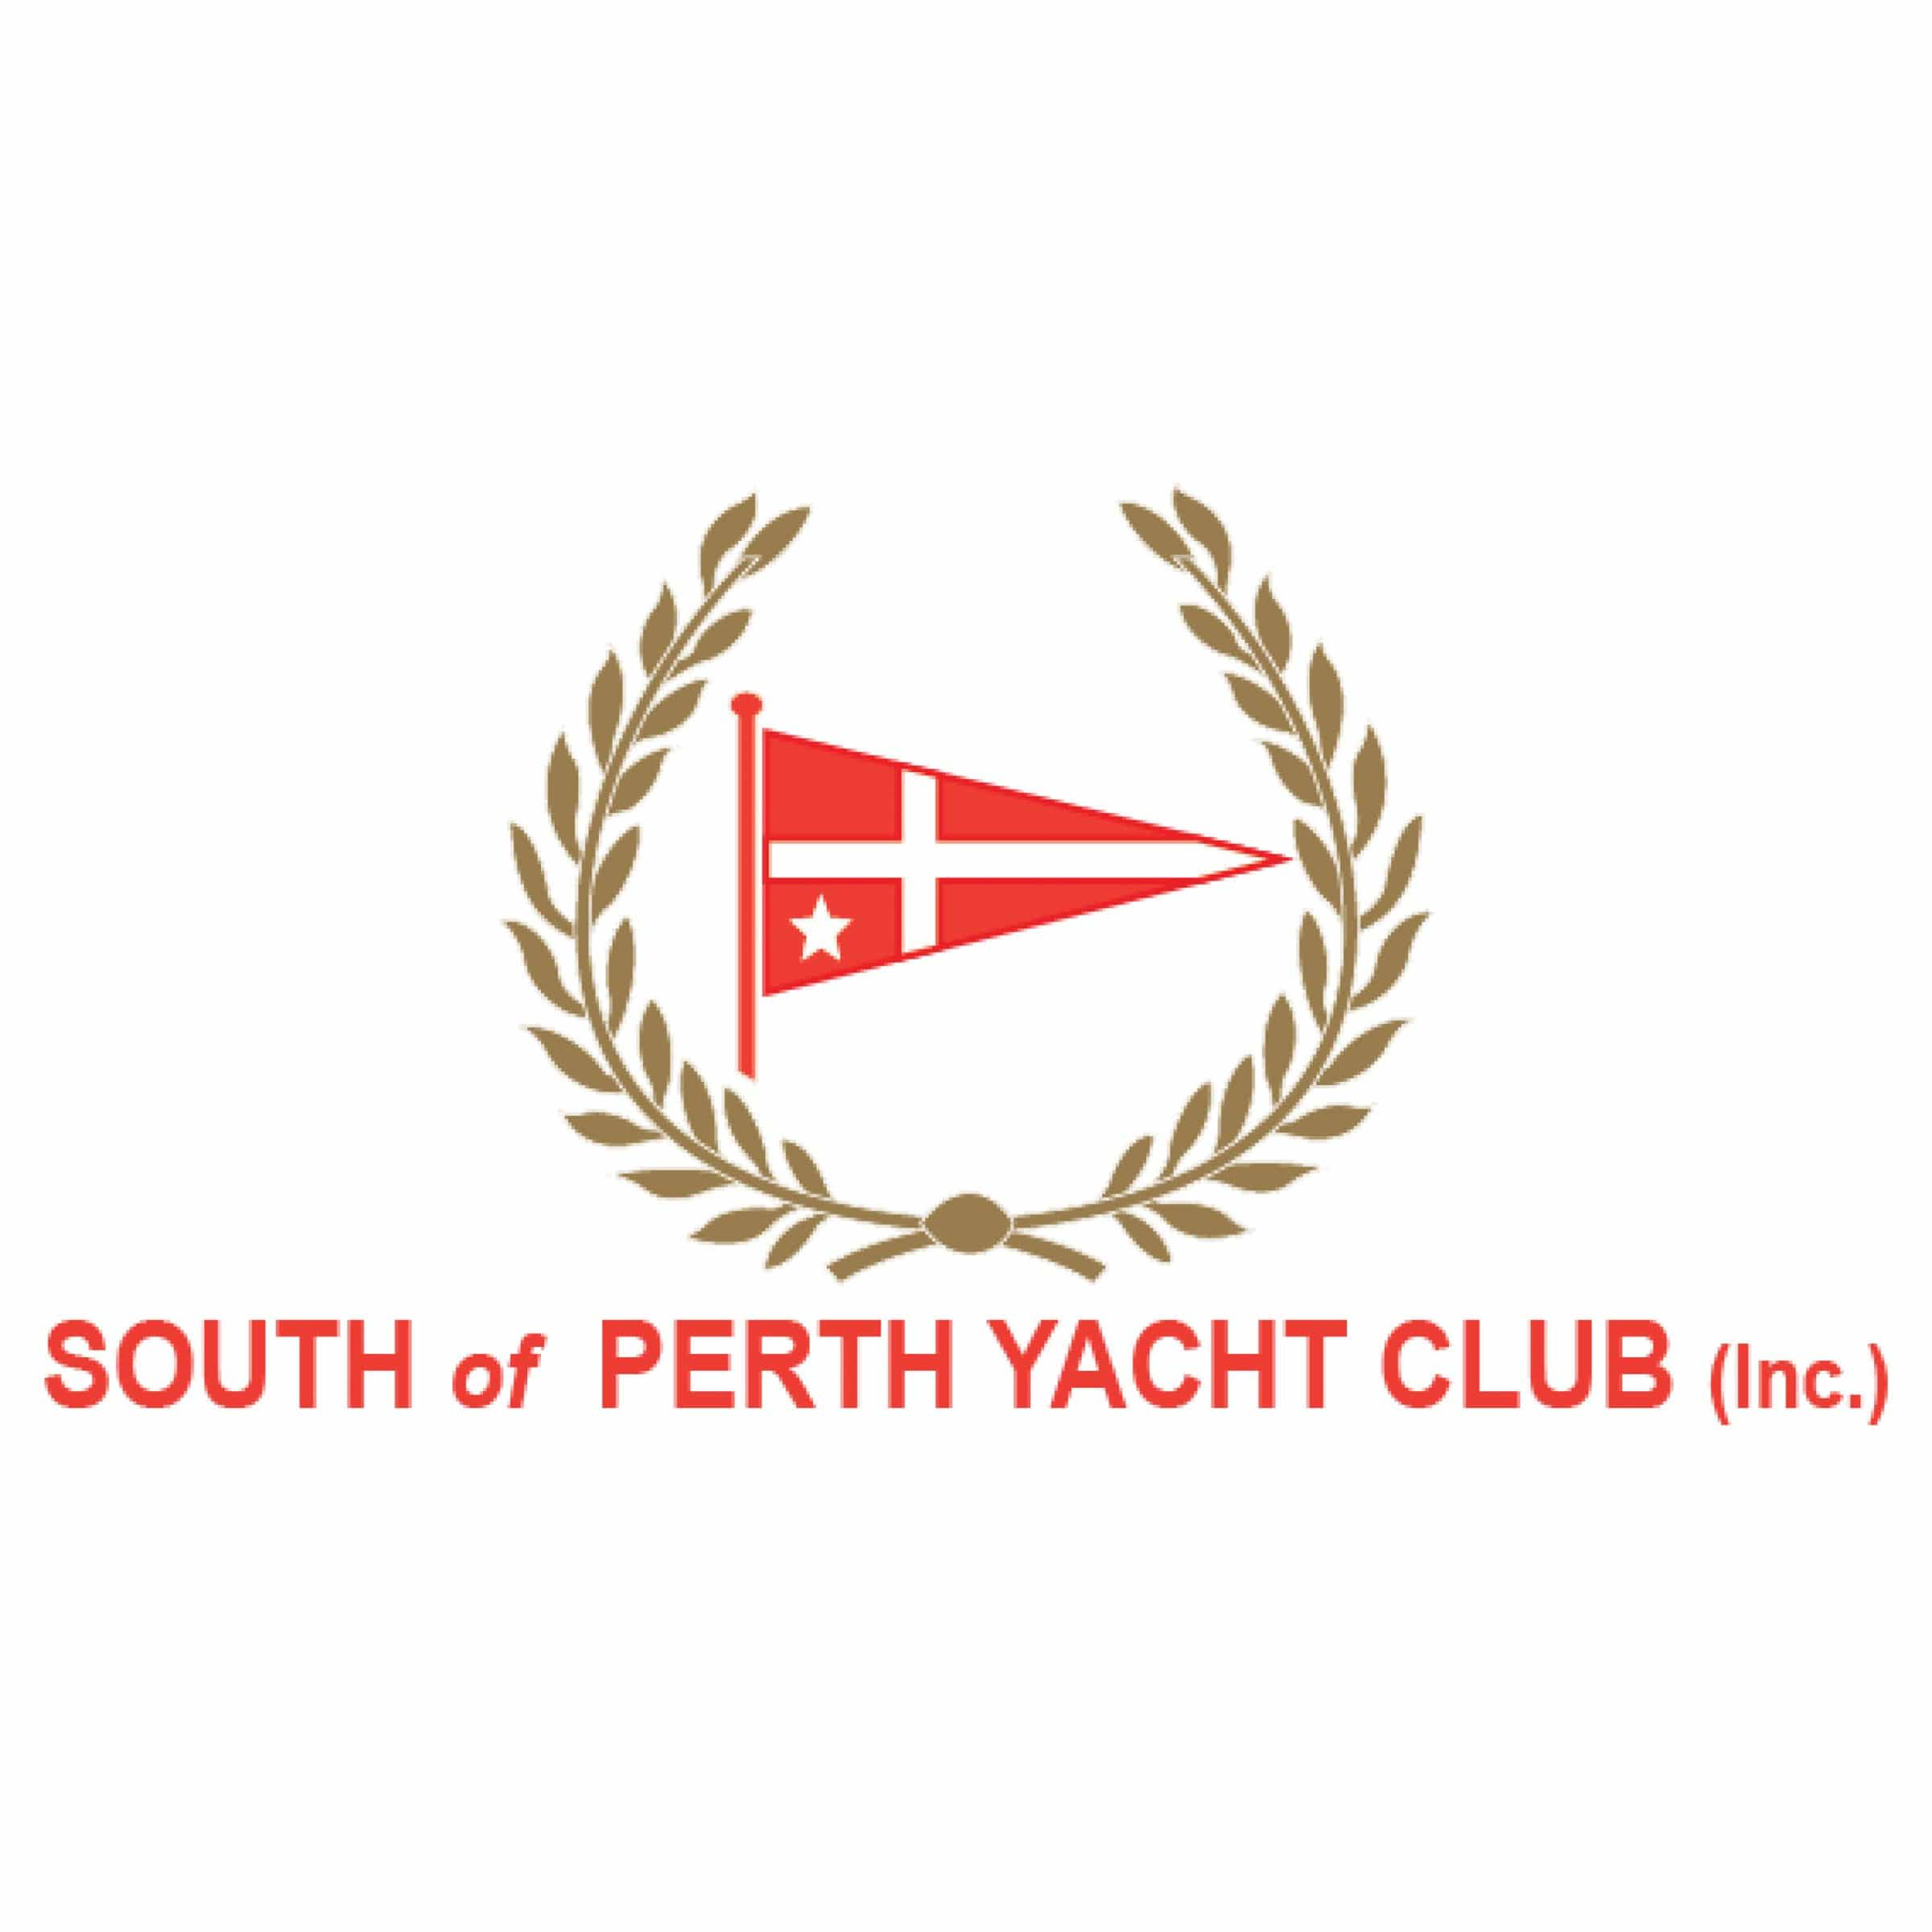 swan river sailing supporter south of perth yacht club logo